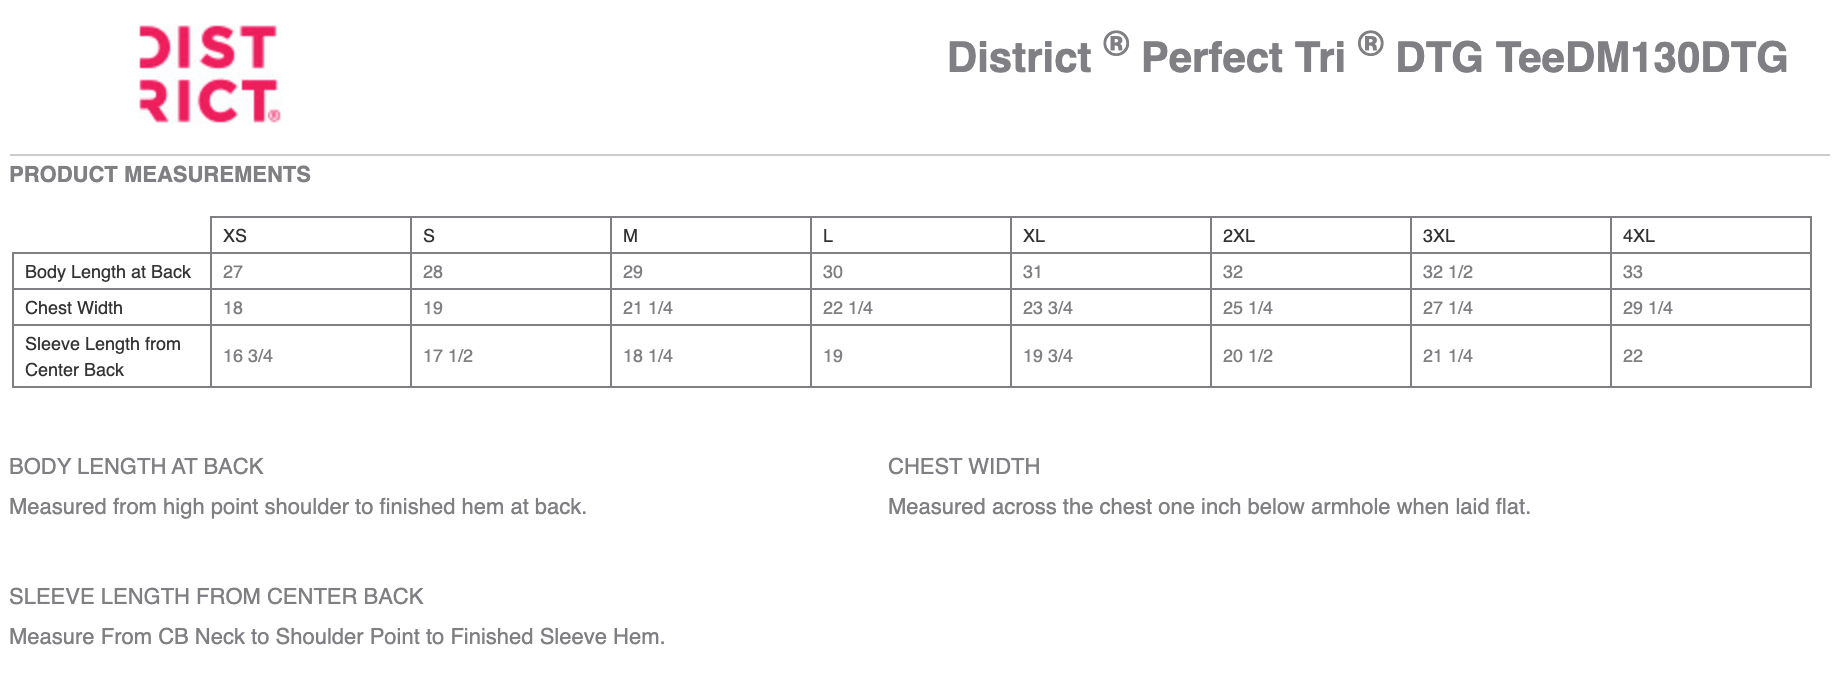 District Perfect Tri